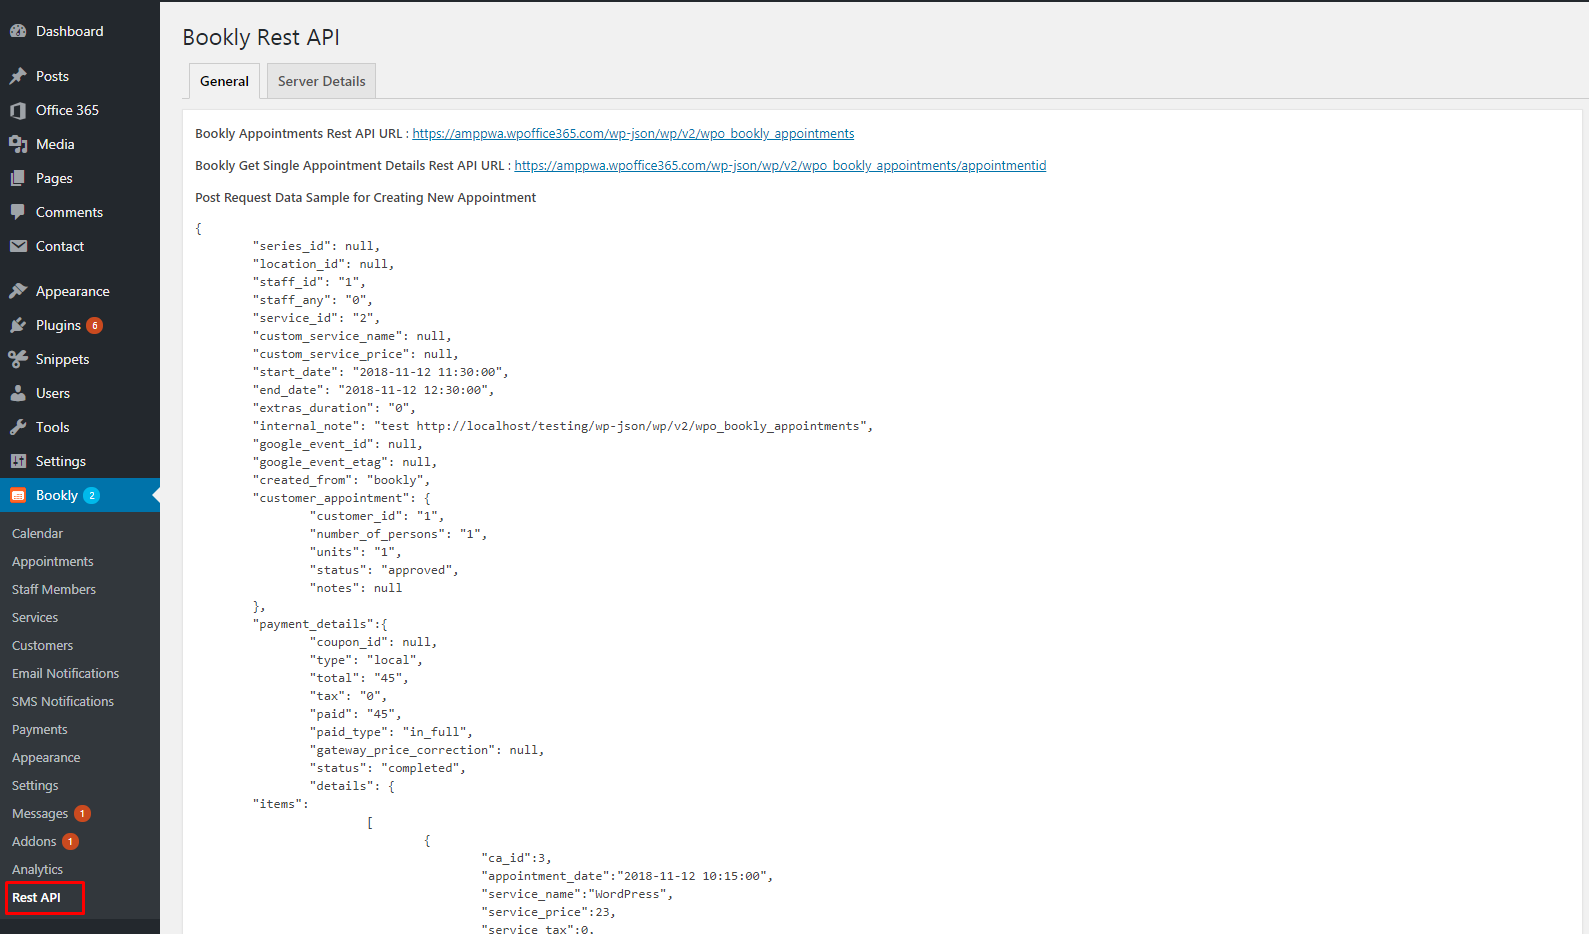 Bookly CRED Rest API Operations - Web Portals for Office 365